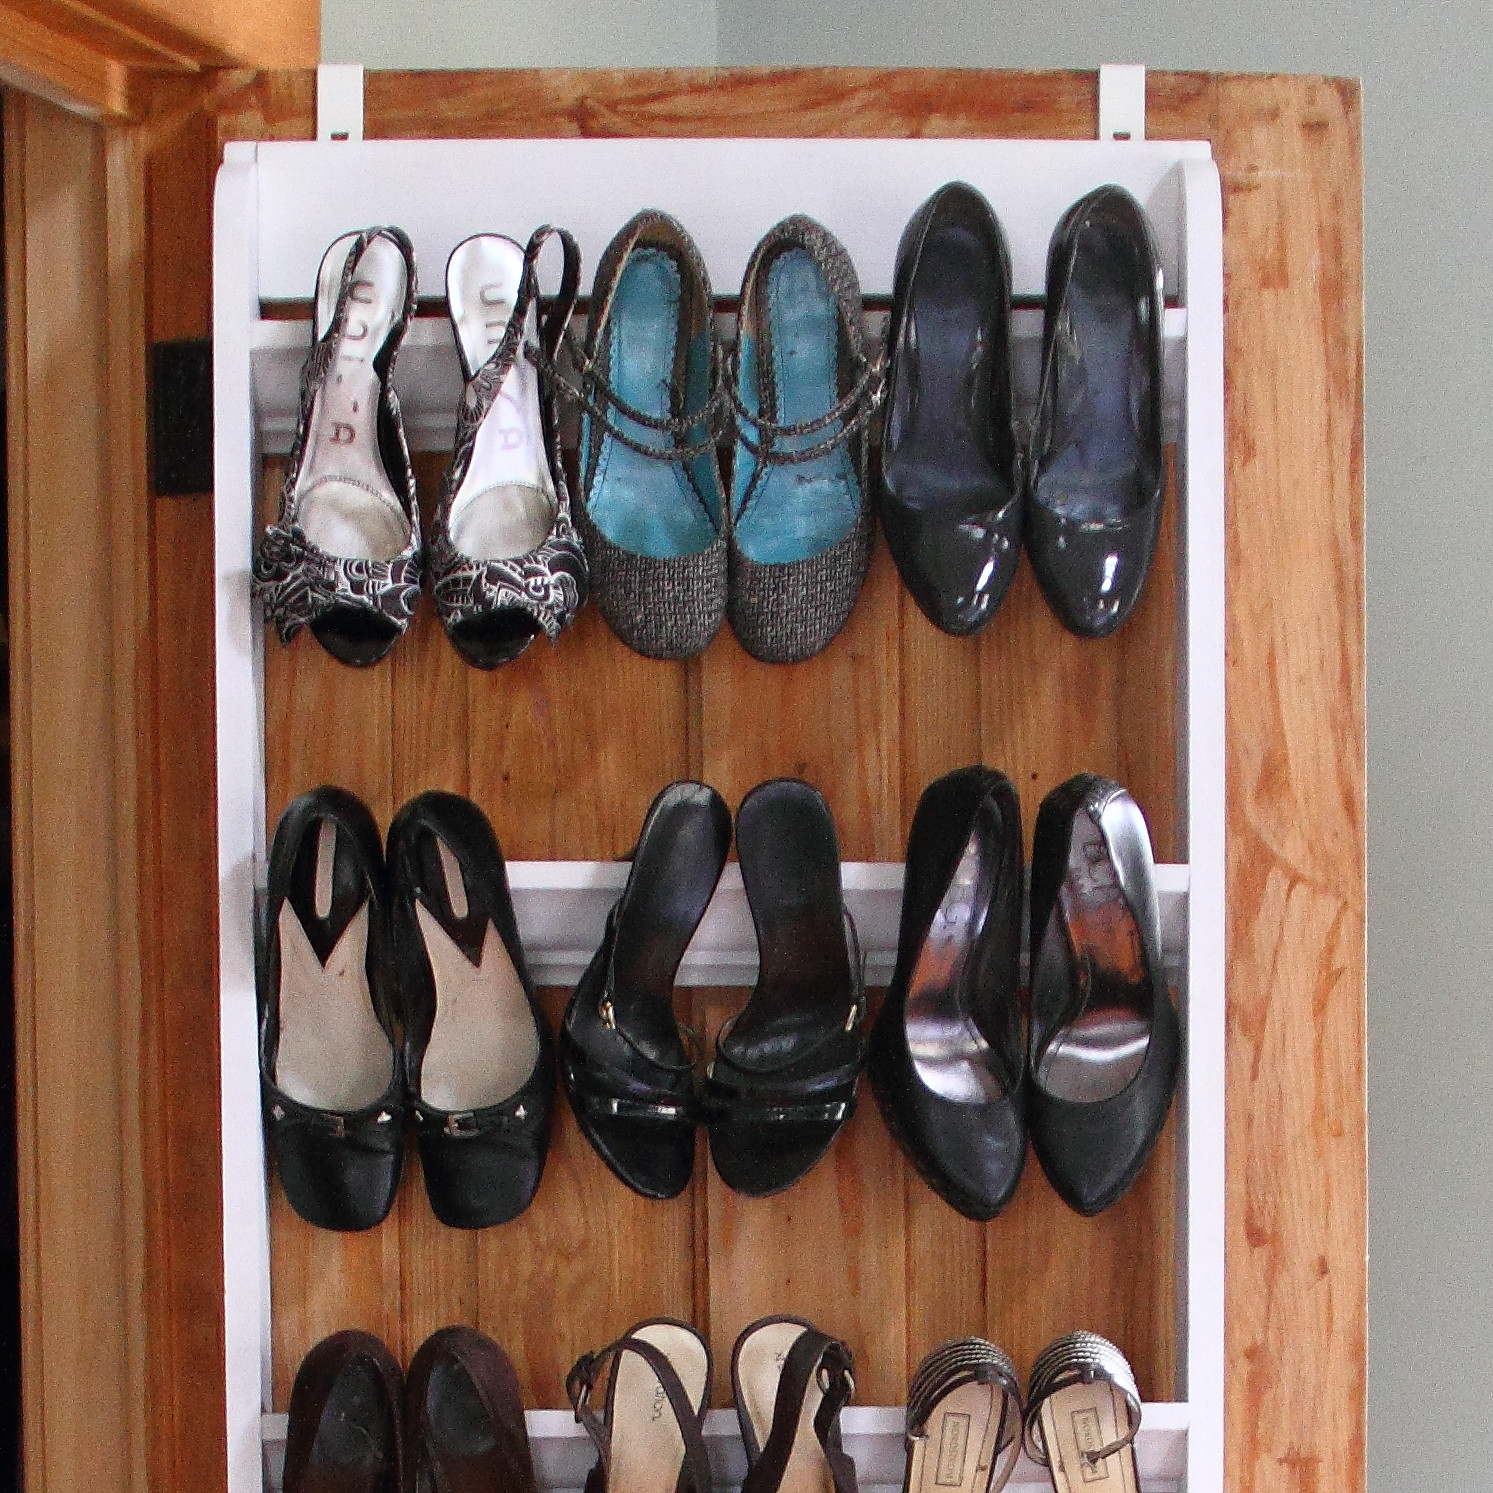 Best ideas about Shoes Organizer DIY . Save or Pin Ana White Now.